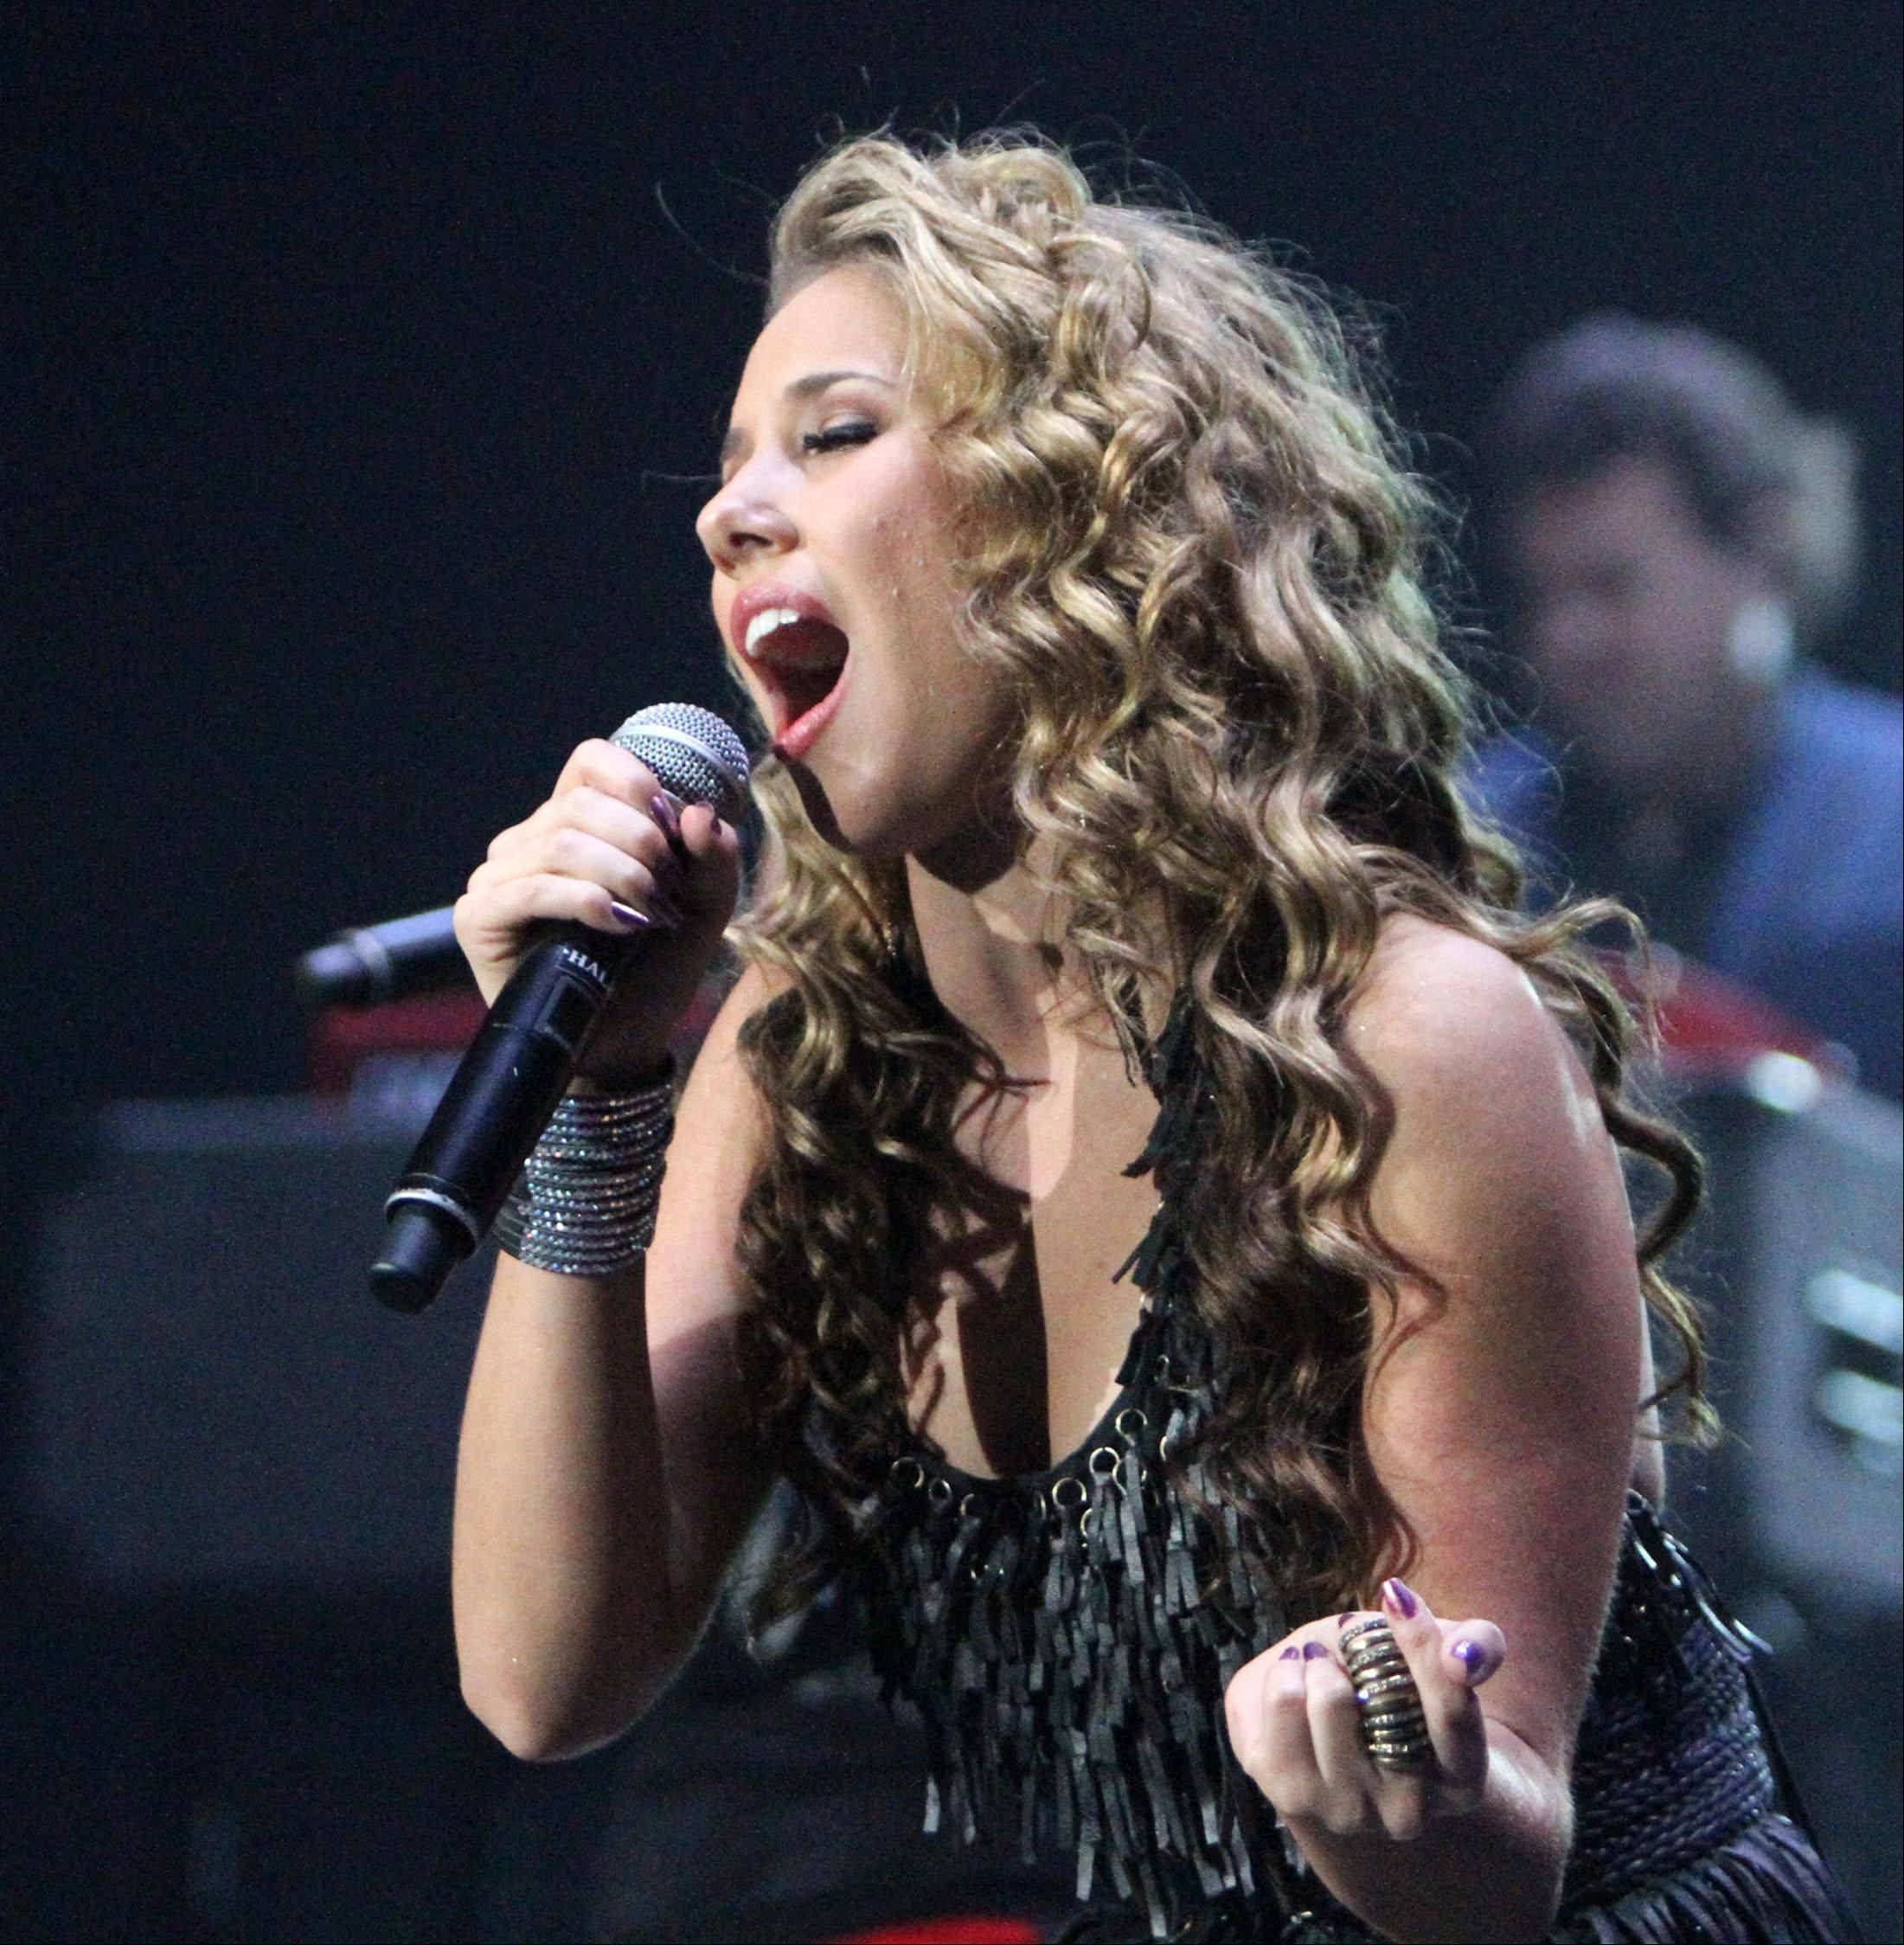 Haley Reinhart performs.